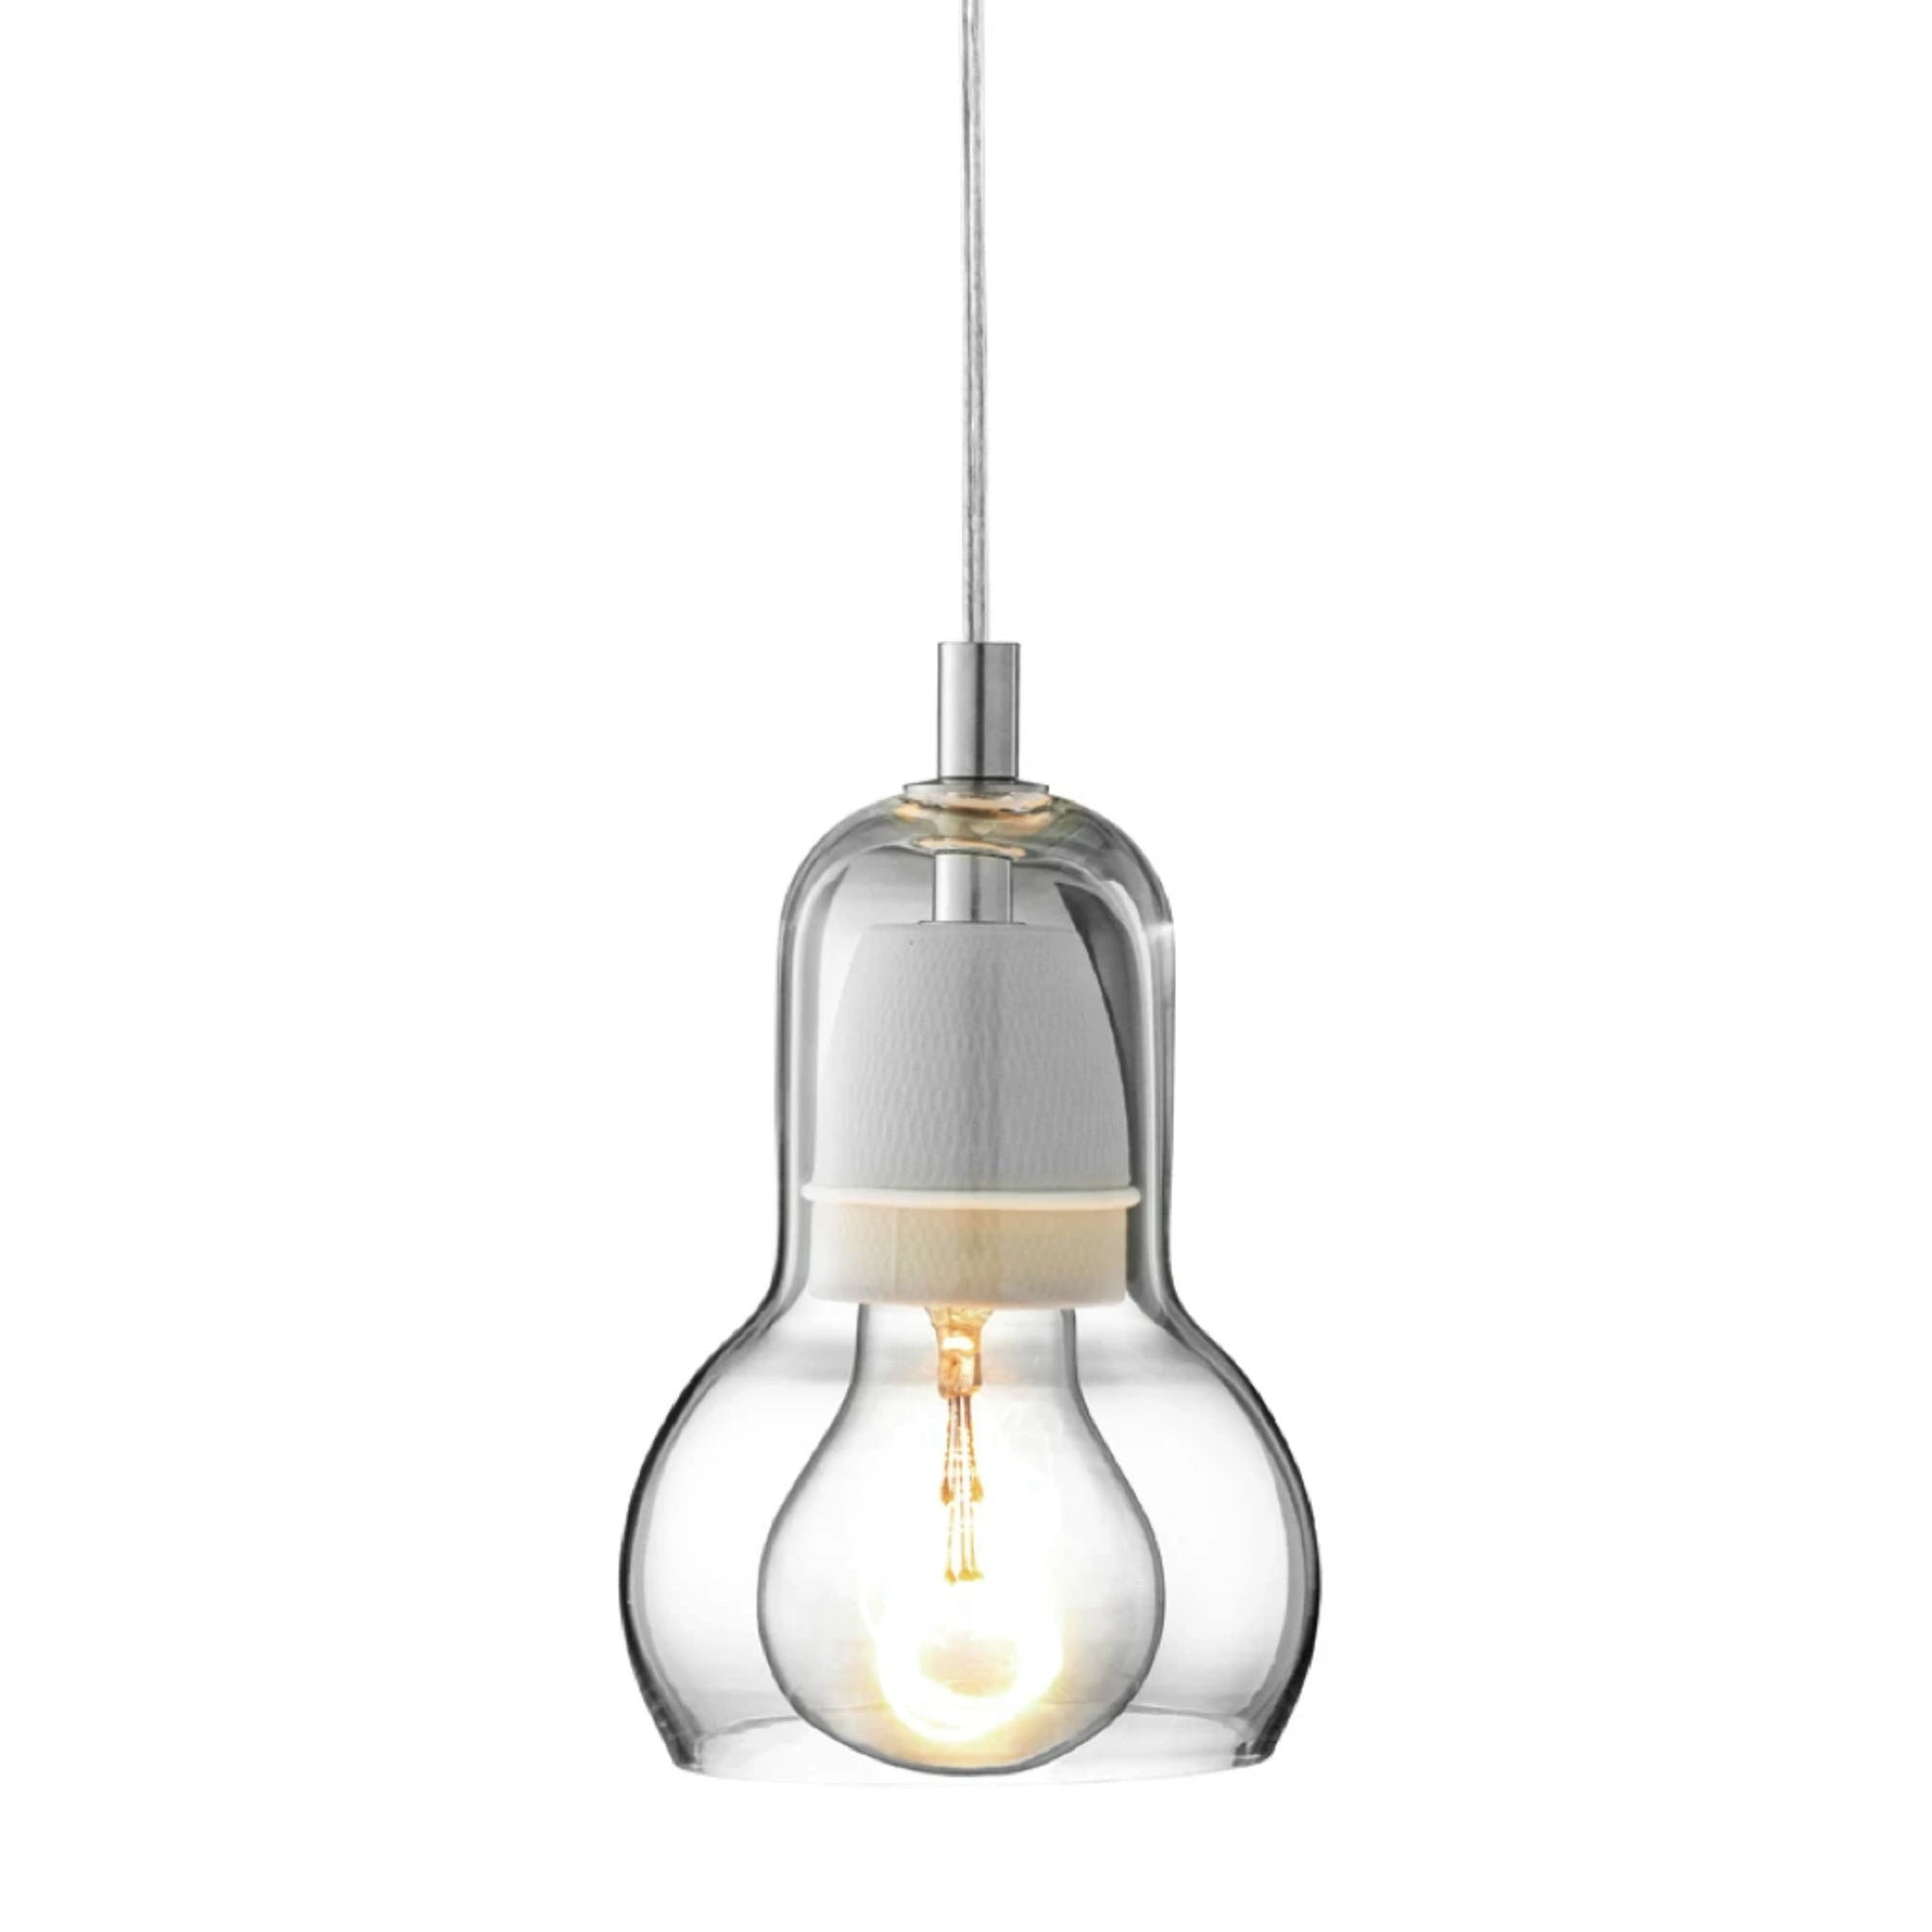 &Tradition Bulb SR1 pendant lamp, clear cord